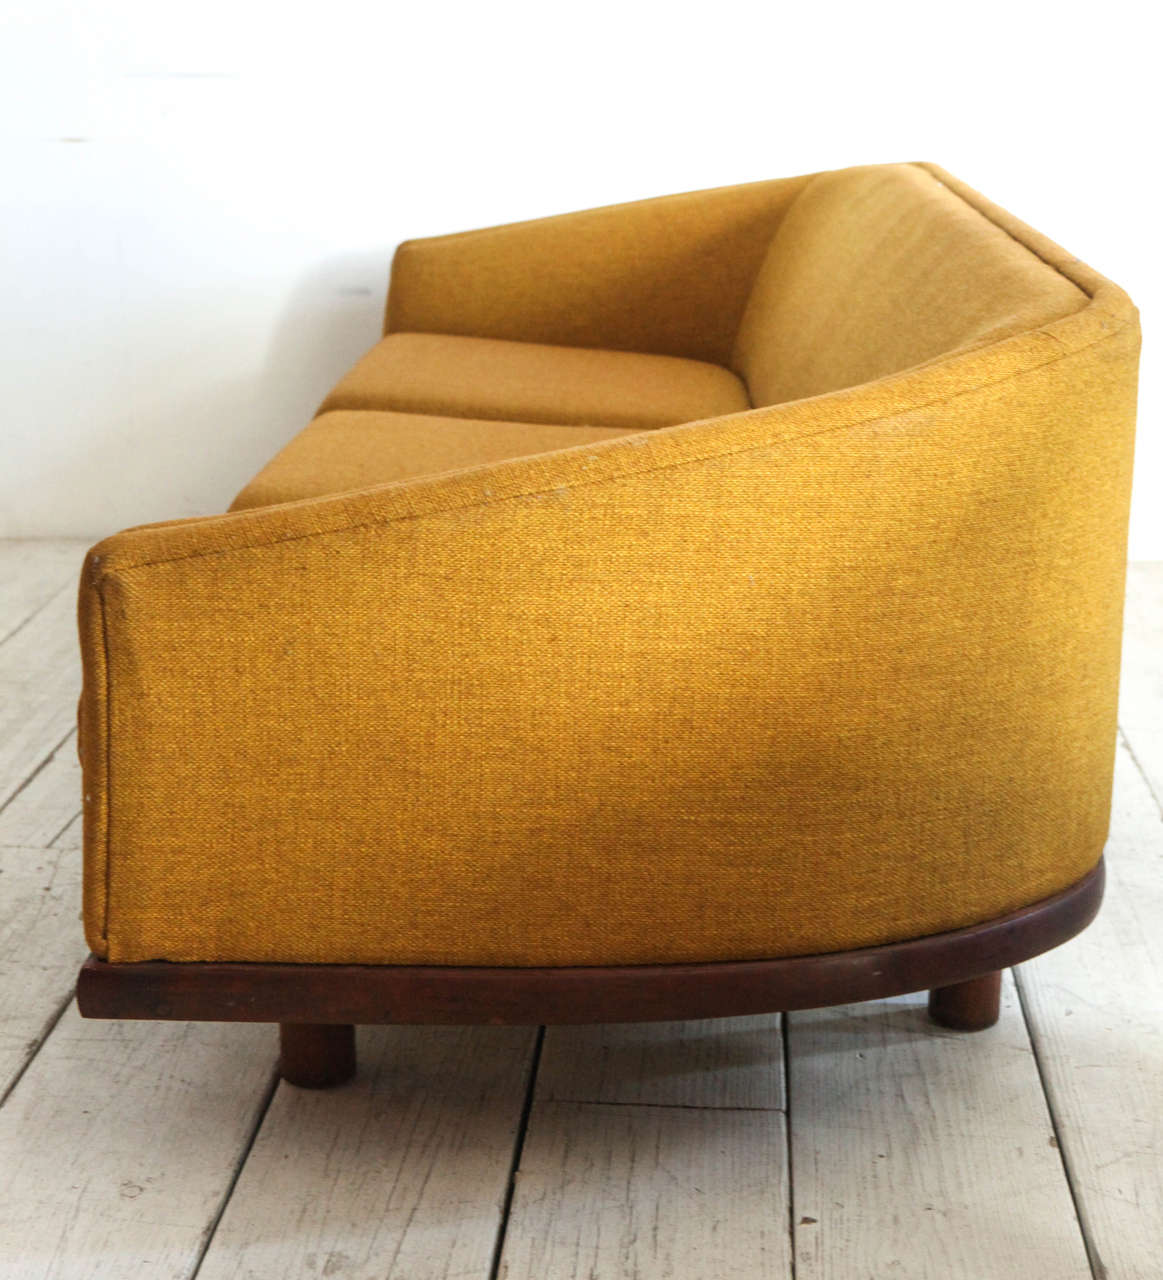 Curved Yellow Leather Sofa: Mid-Century Curved Back Sofa In Mustard Yellow Fabric At